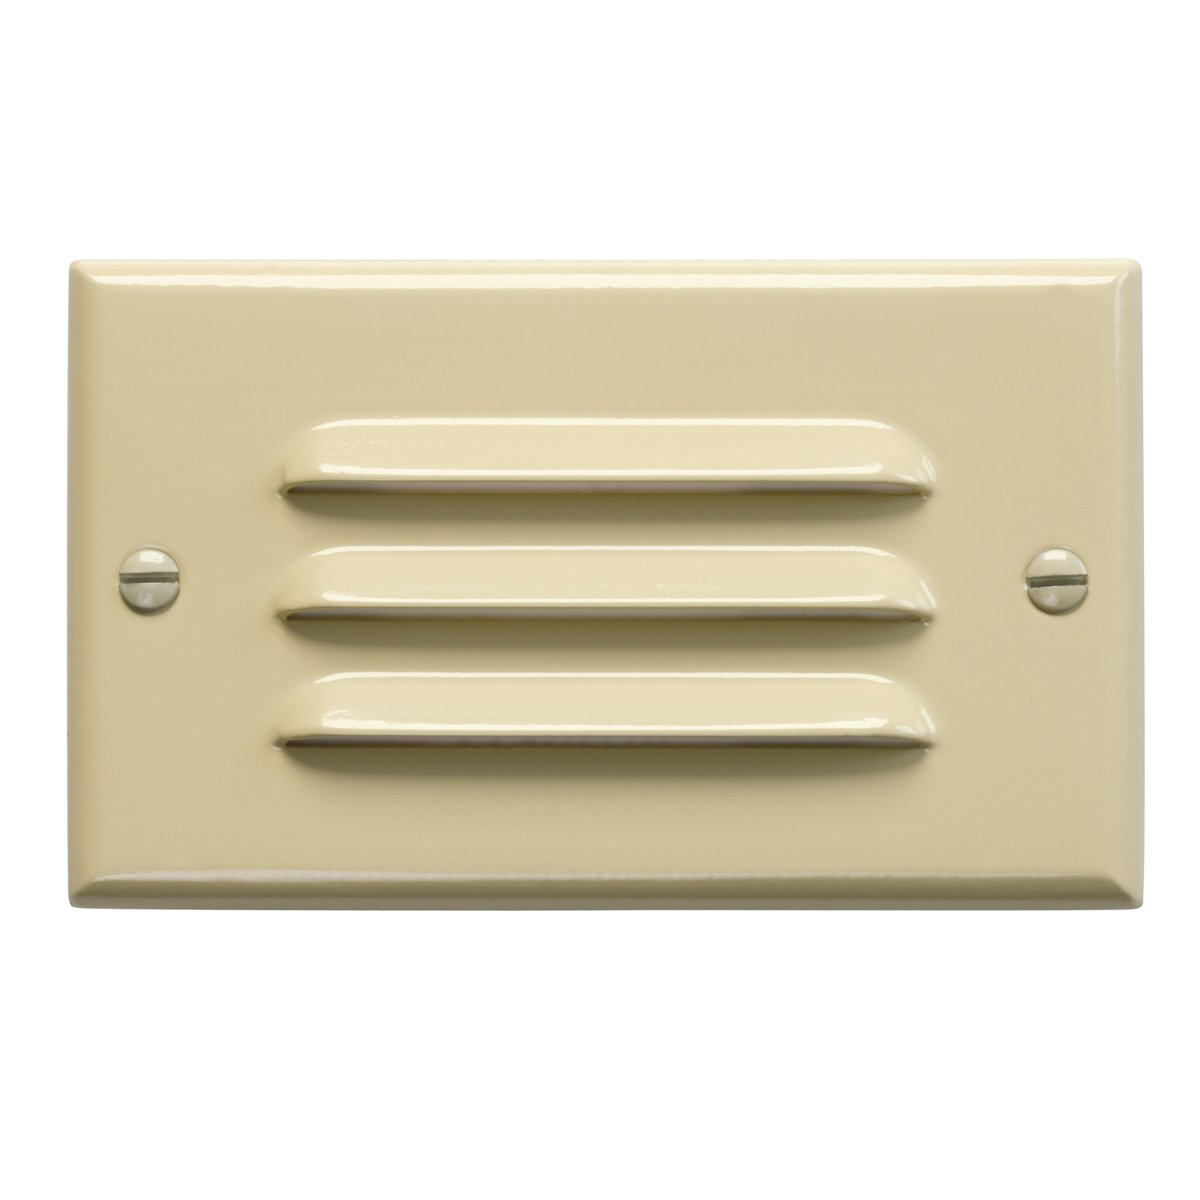 Kichler  12600IV Horizontal Louver Design Pro Interior Step and Hall Light, Ivory by KICHLER